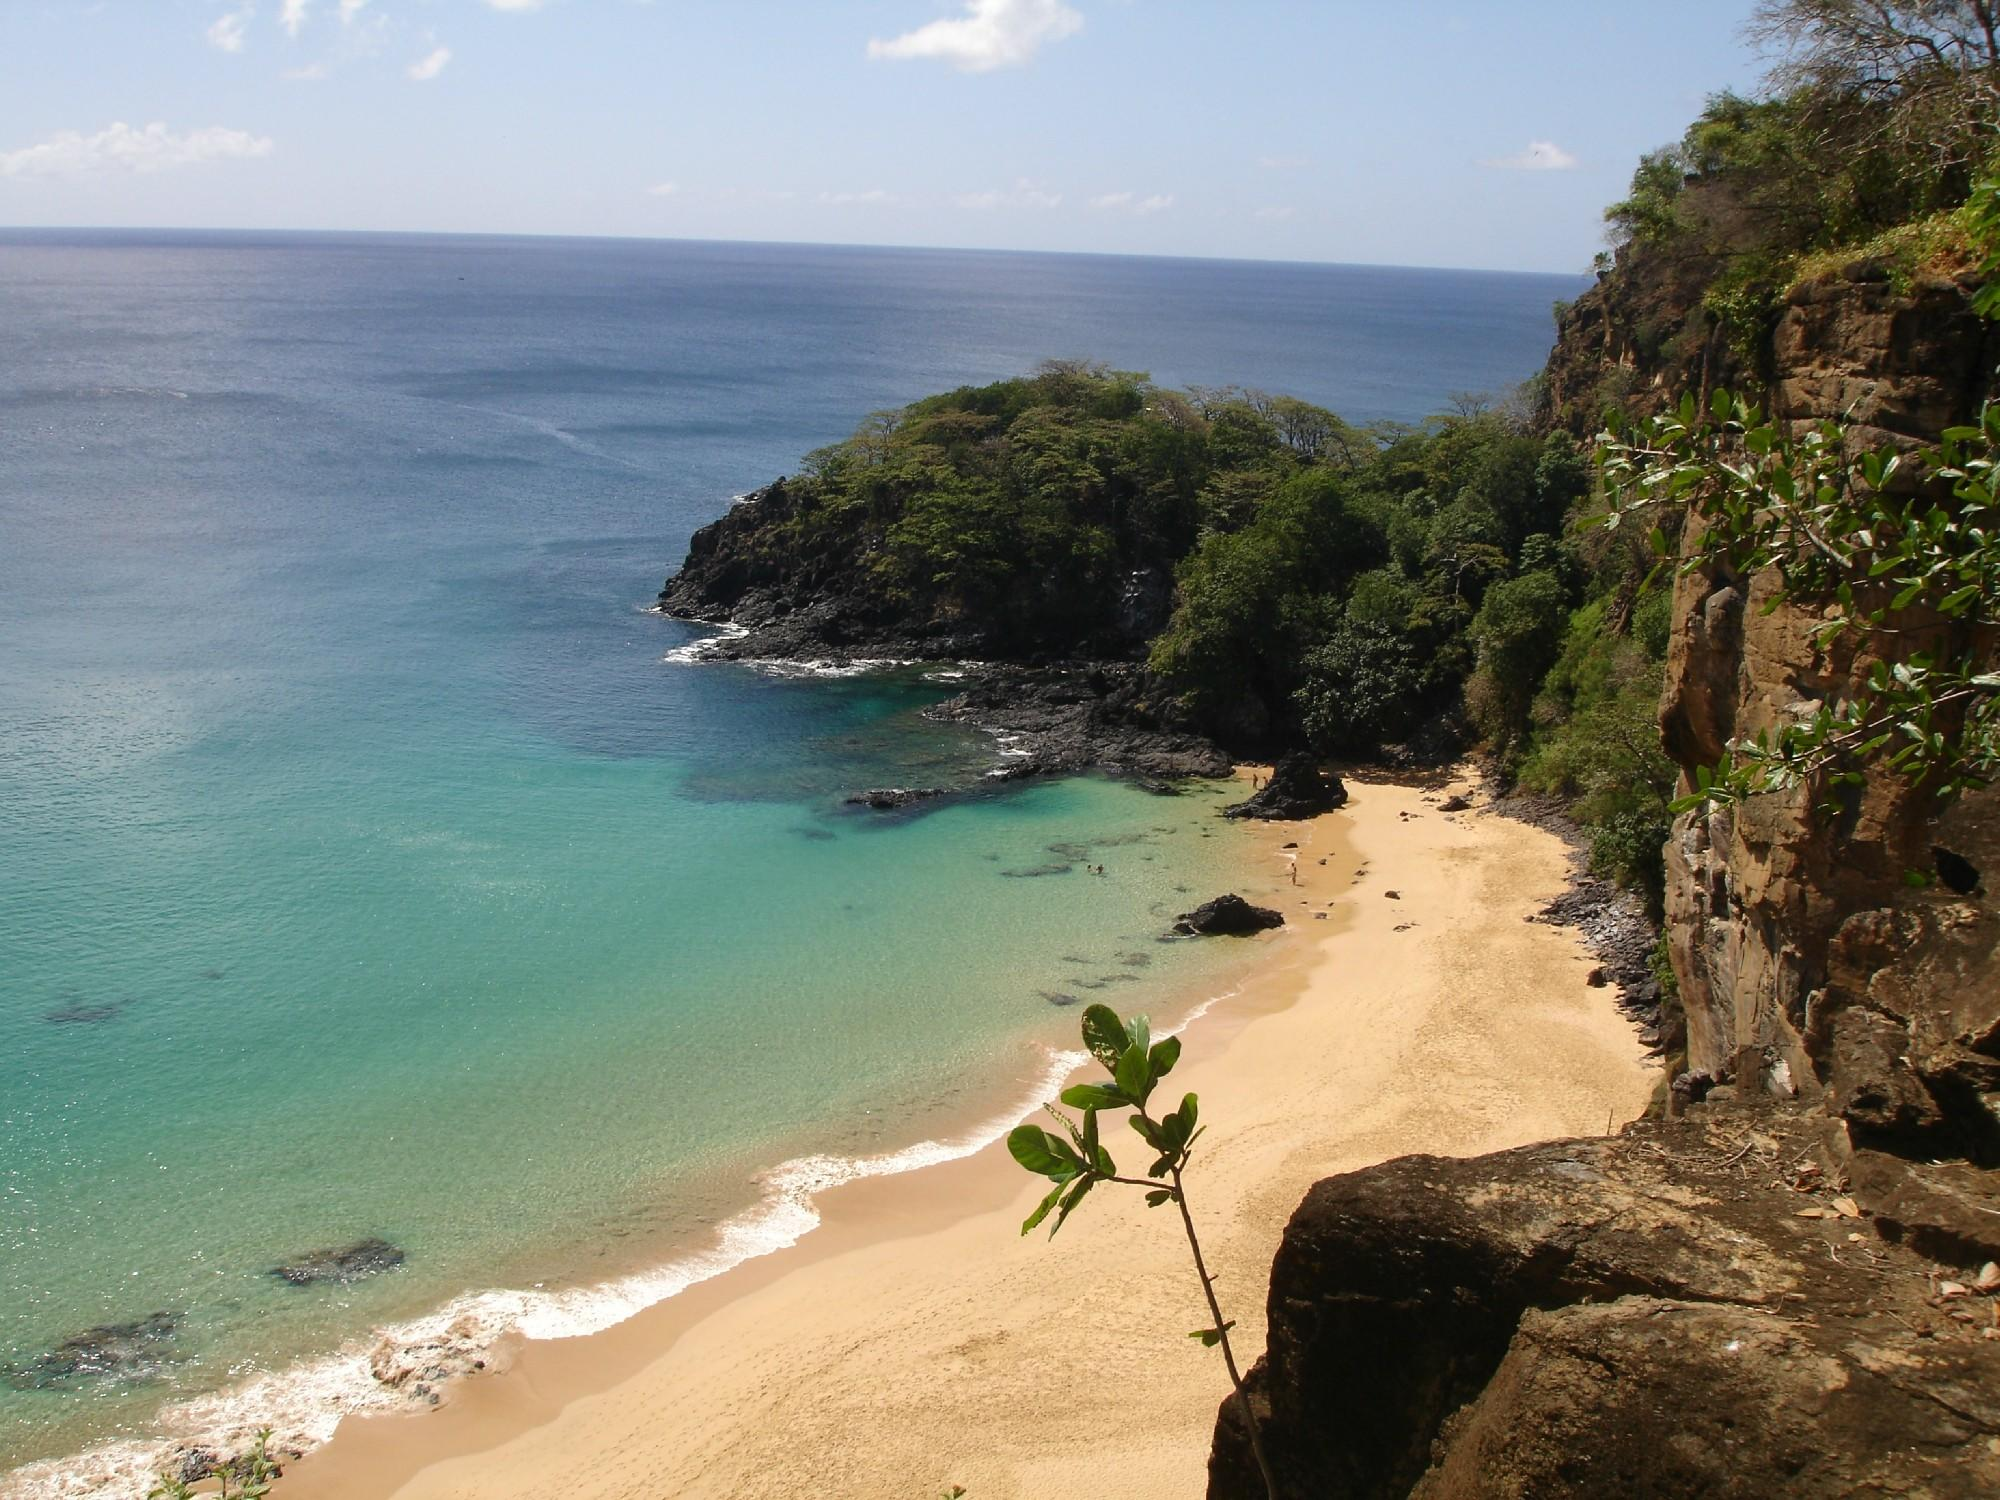 Tripadvisor Users Top Ranked Beach In The World For 2017 Is Sancho Bay